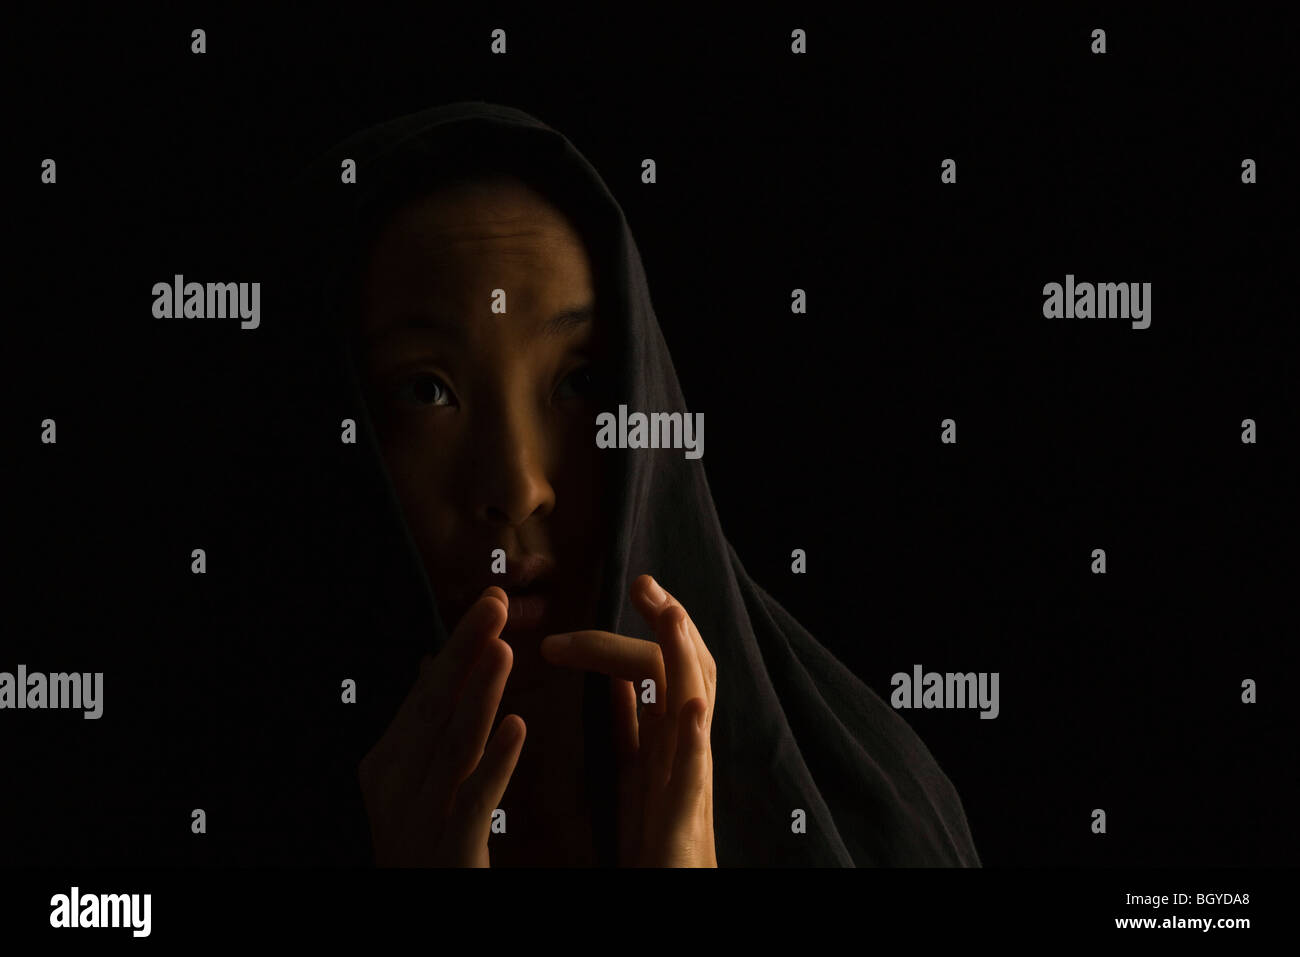 Woman wearing headscarf, hands fearfully held up before face, looking up - Stock Image